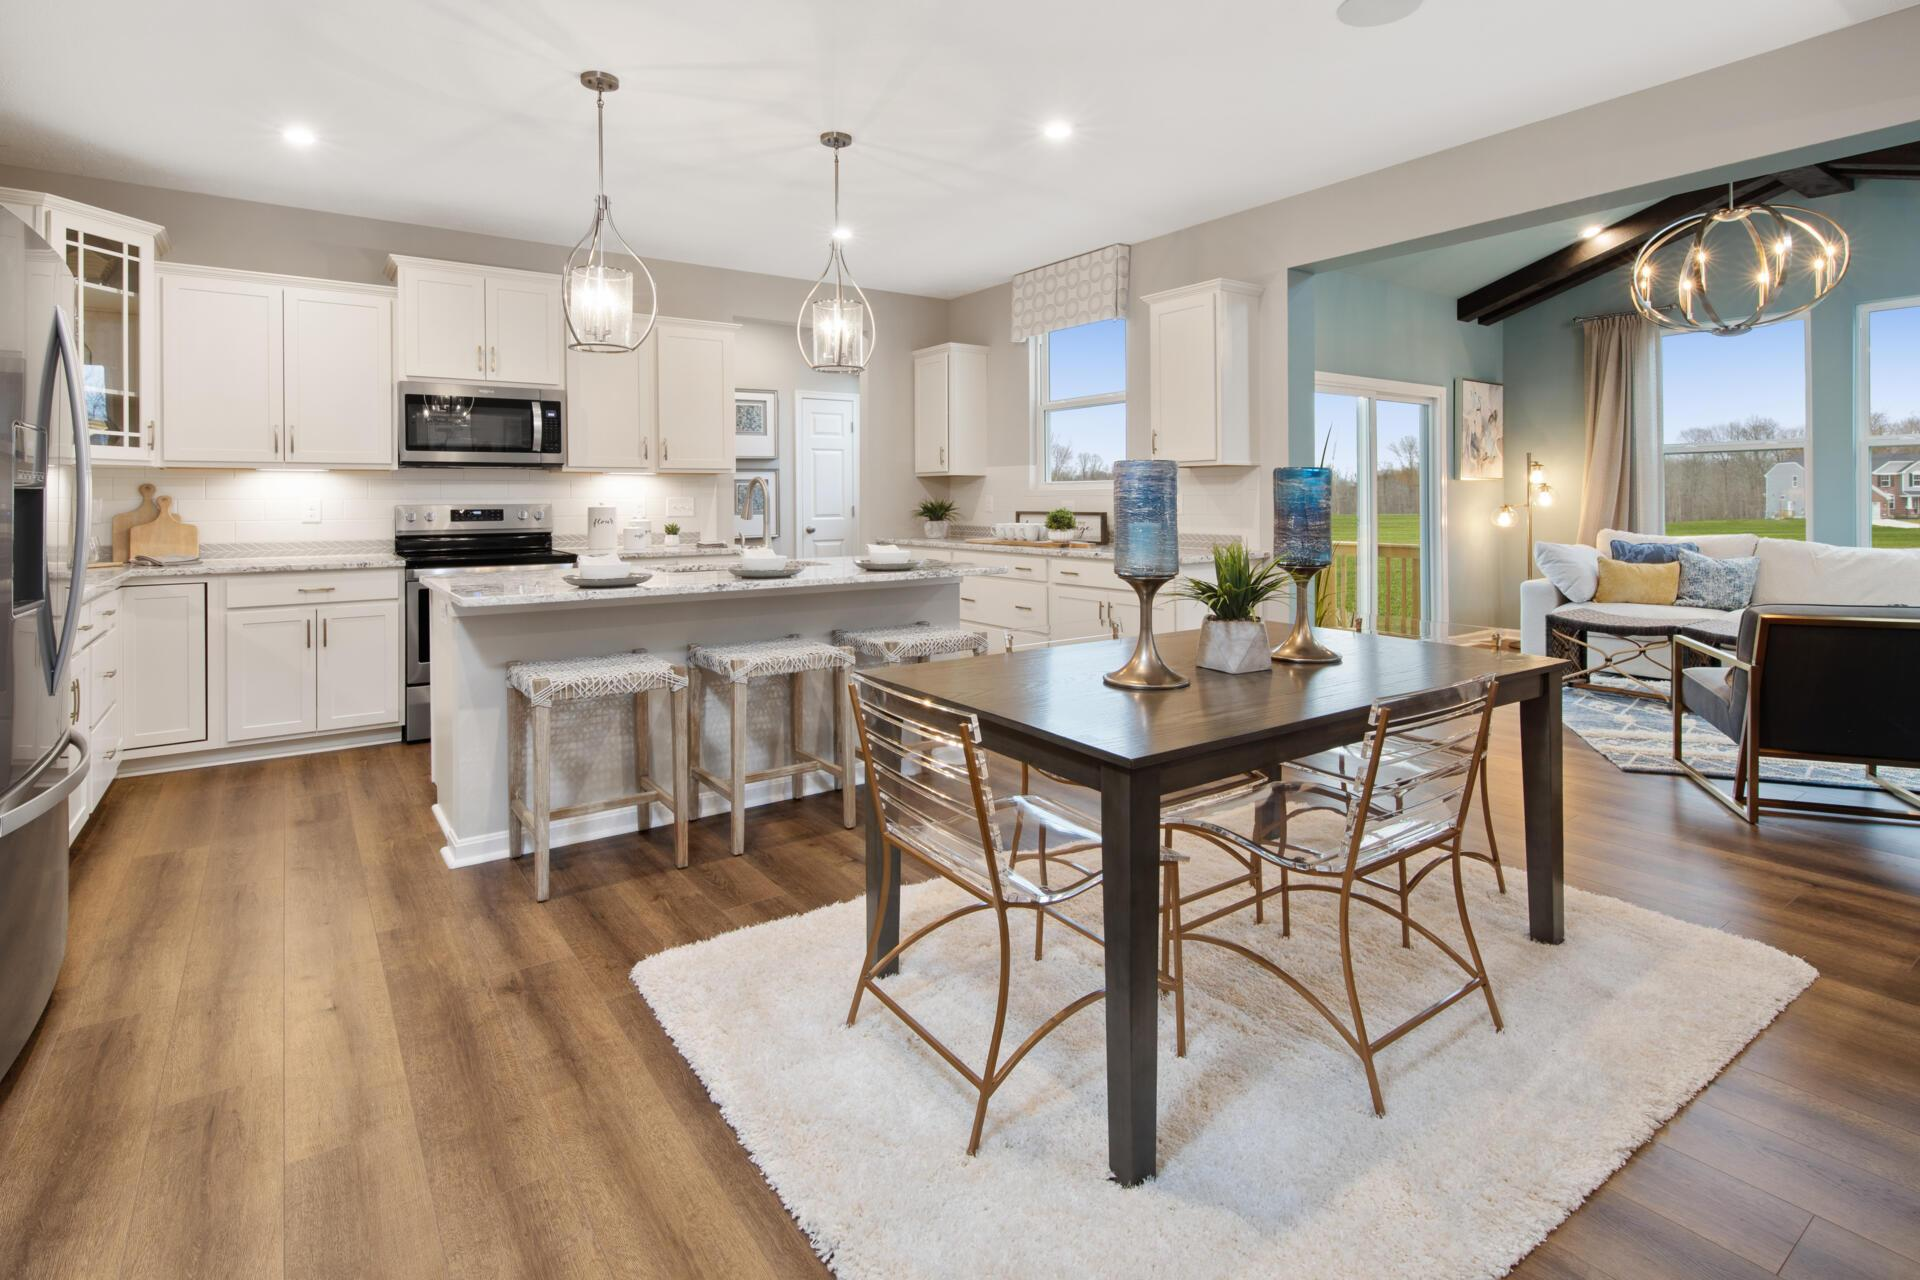 Kitchen featured in the Ashton By Drees Homes in Cincinnati, KY